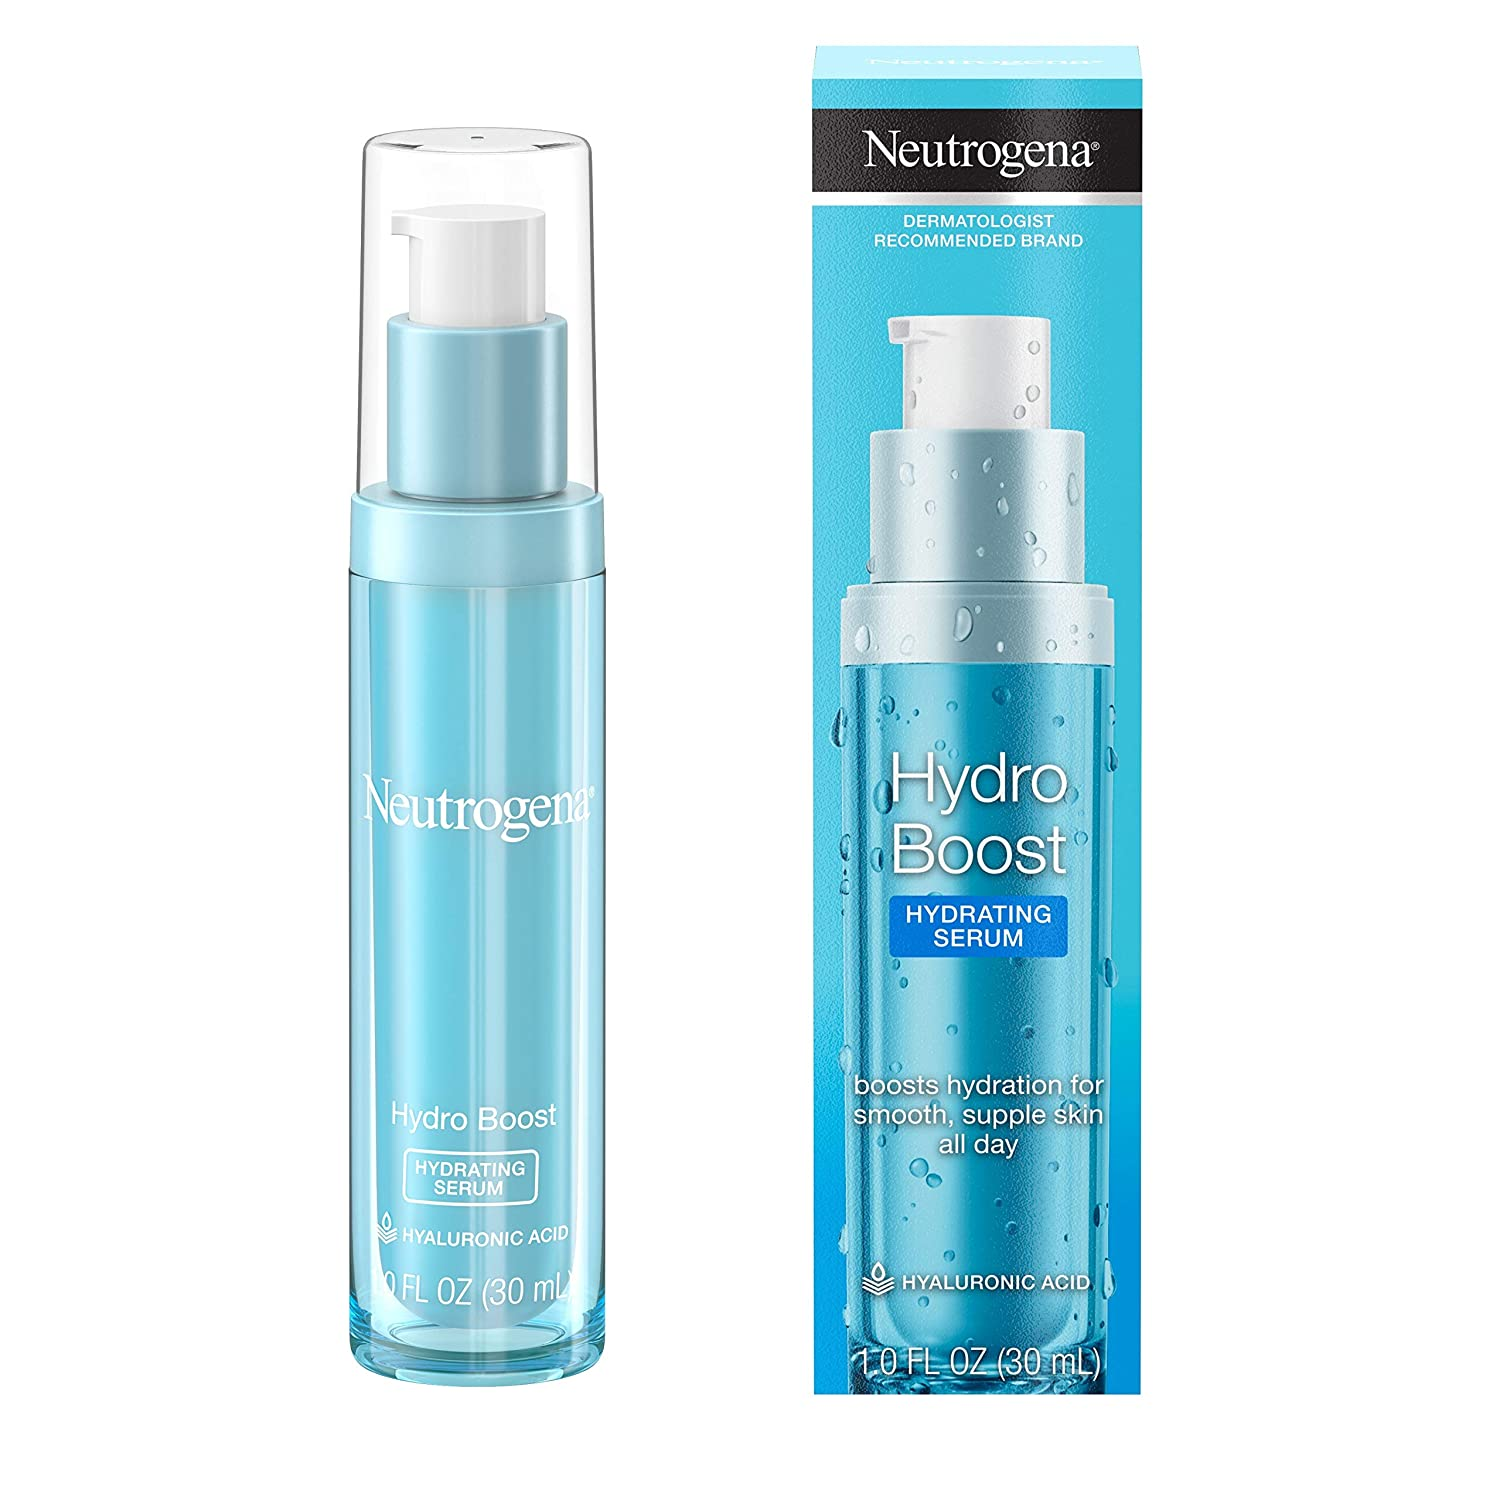 Neutrogena Hydro Boost Hydrating Hyaluronic Acid Serum, Oil-Free and Non-Comedogenic Face Serum Formula for Glowing Complexion, Oil-Free &...